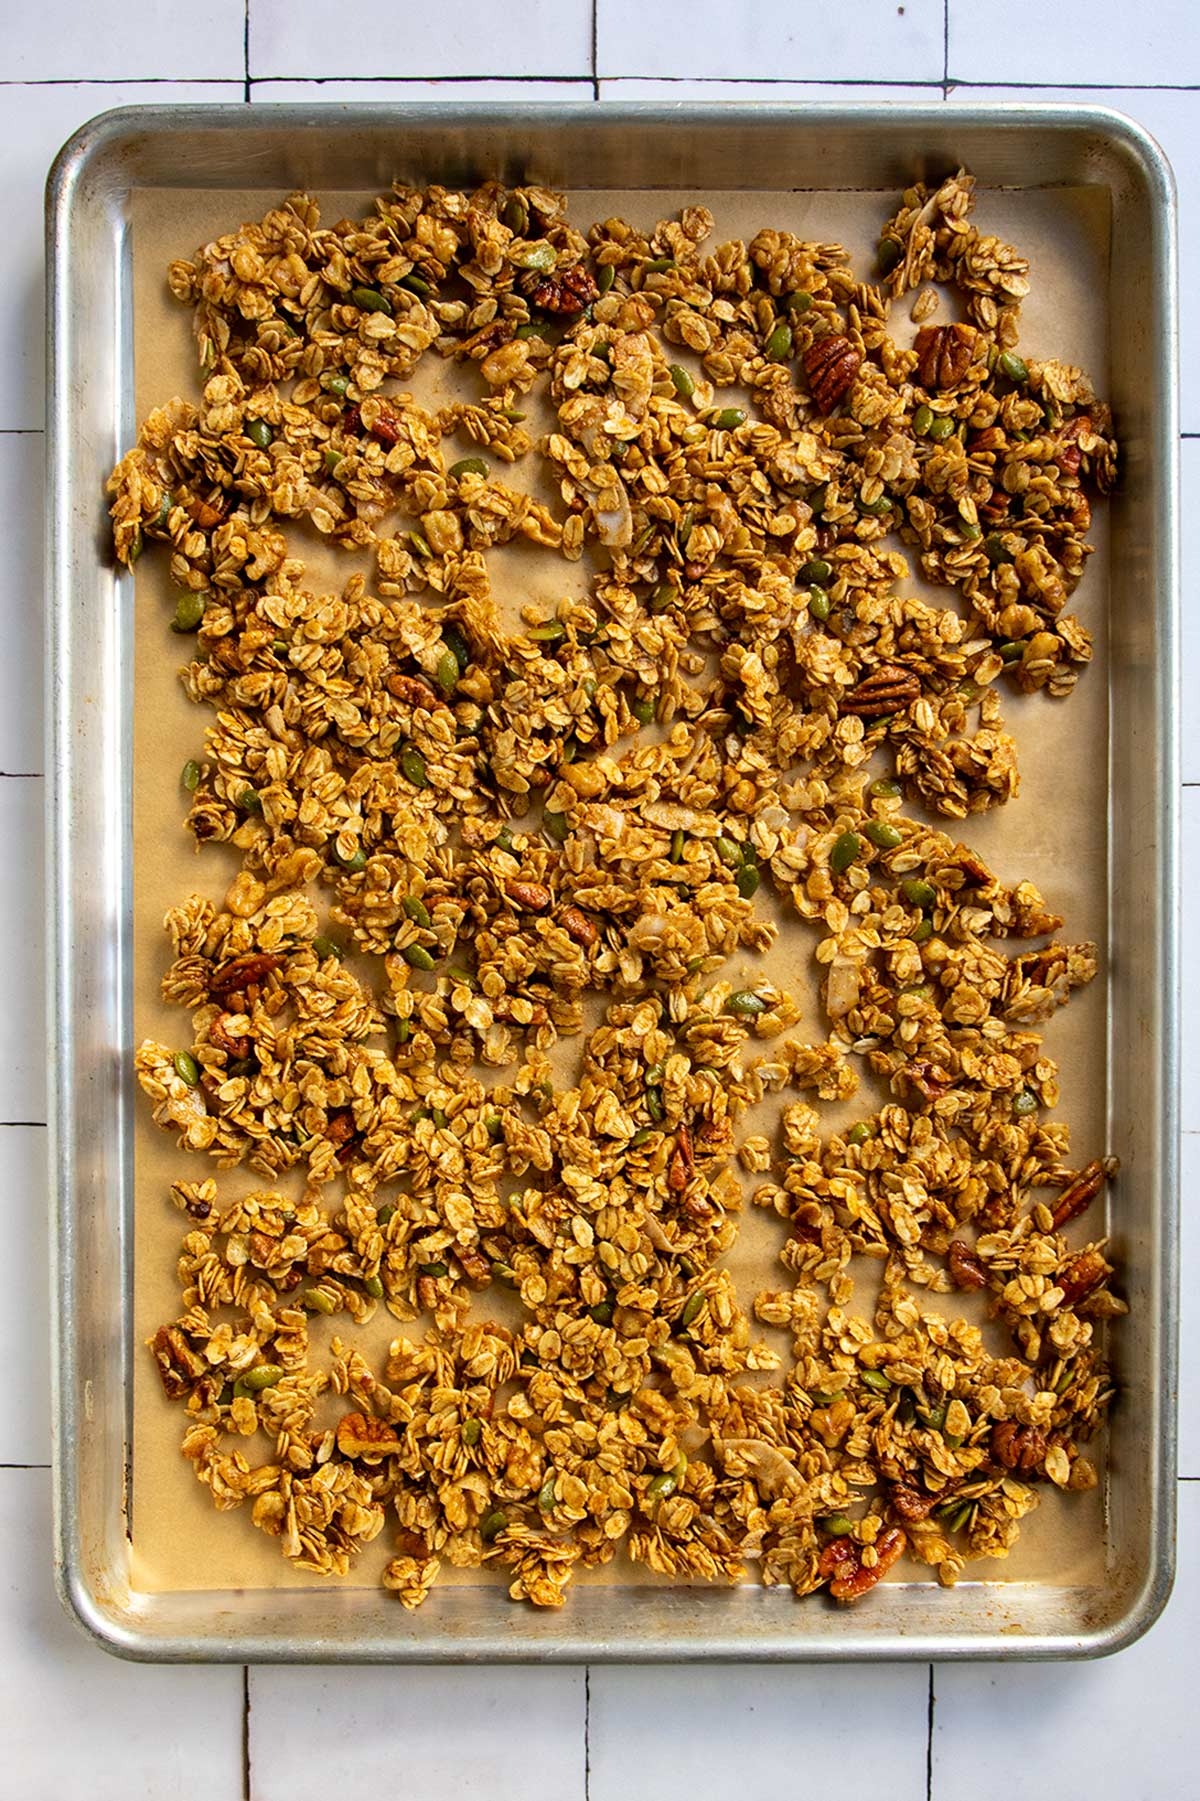 unbaked granola on parchment-lined sheet tray